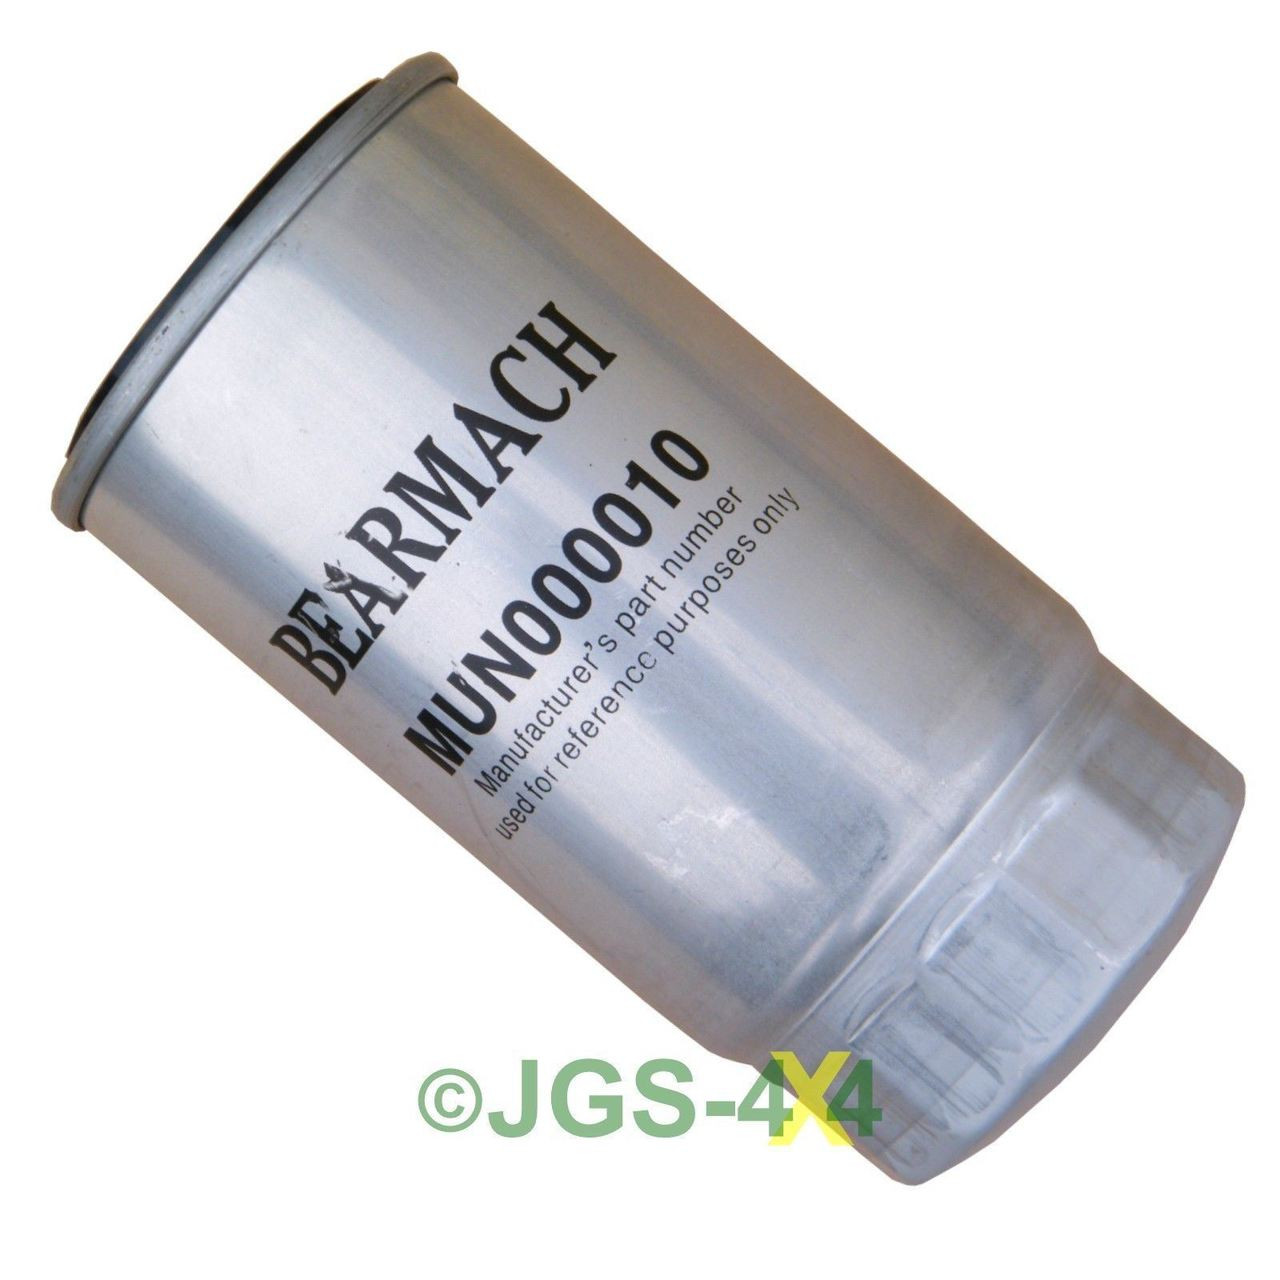 land rover freelander 1 diesel fuel filter 2 0 td4 bmw engine mun000010 [ 1280 x 1280 Pixel ]